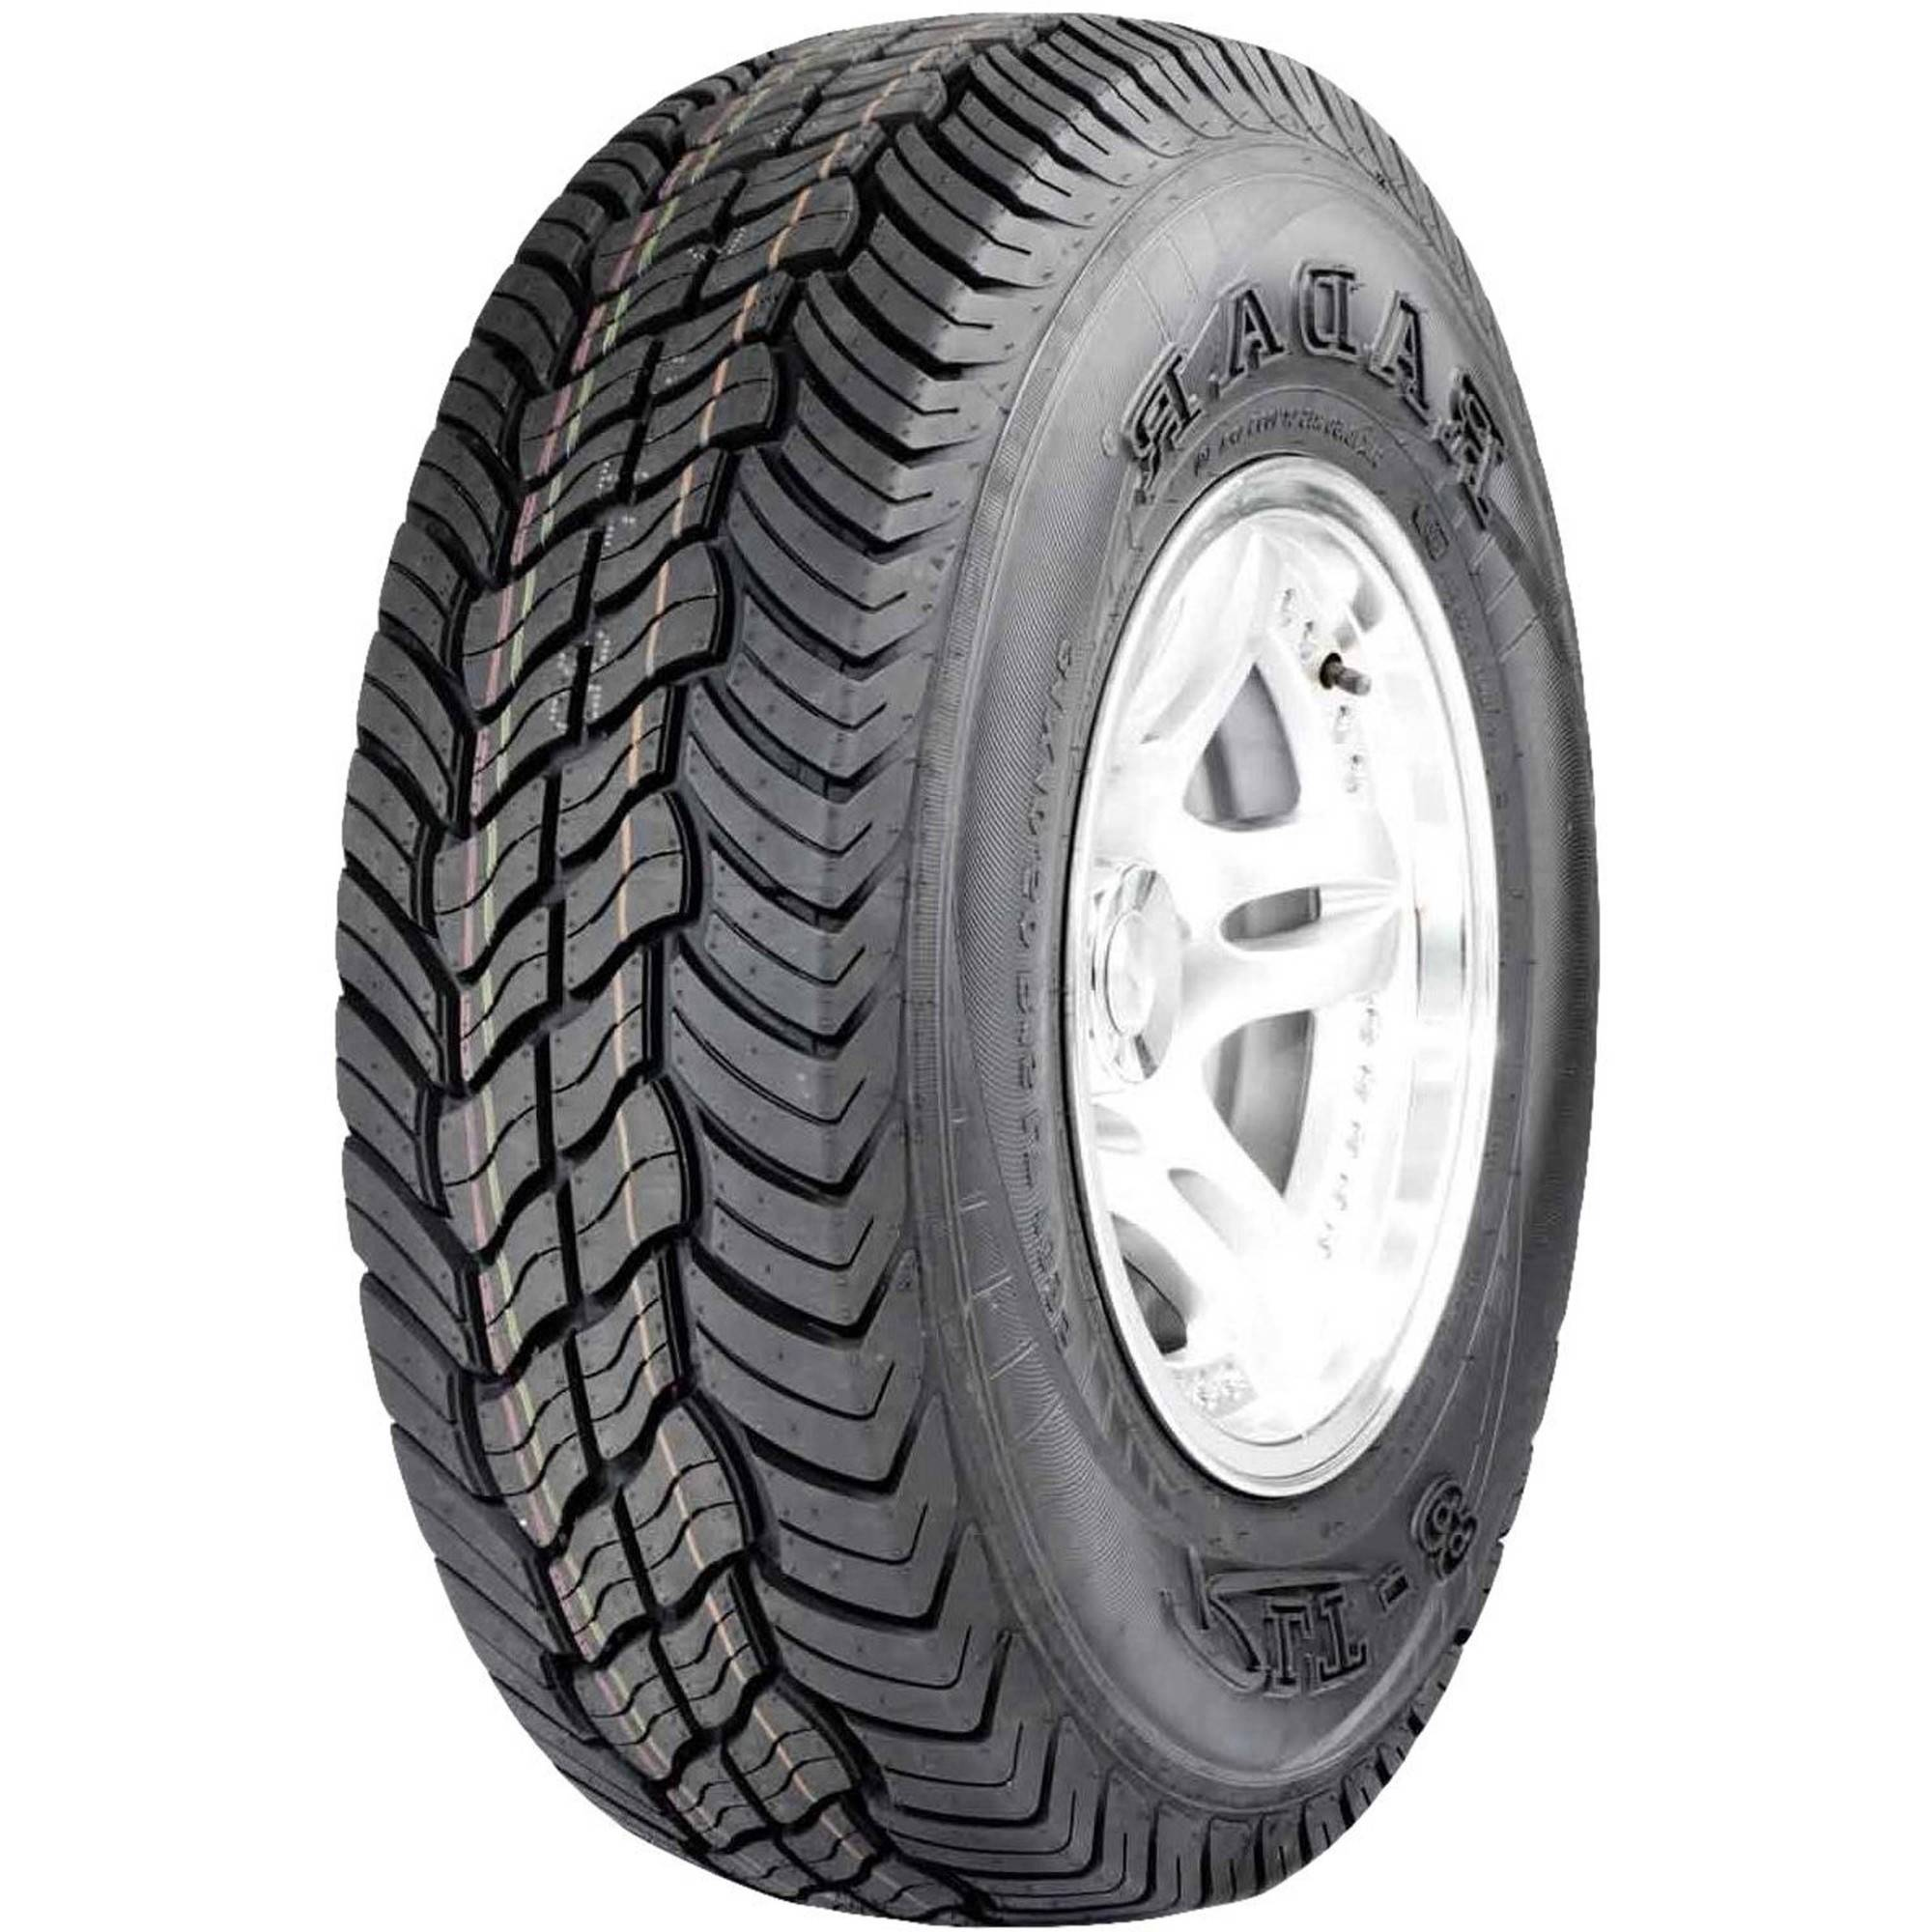 LT225/75R16 115L BW Radar RLT9 Tires